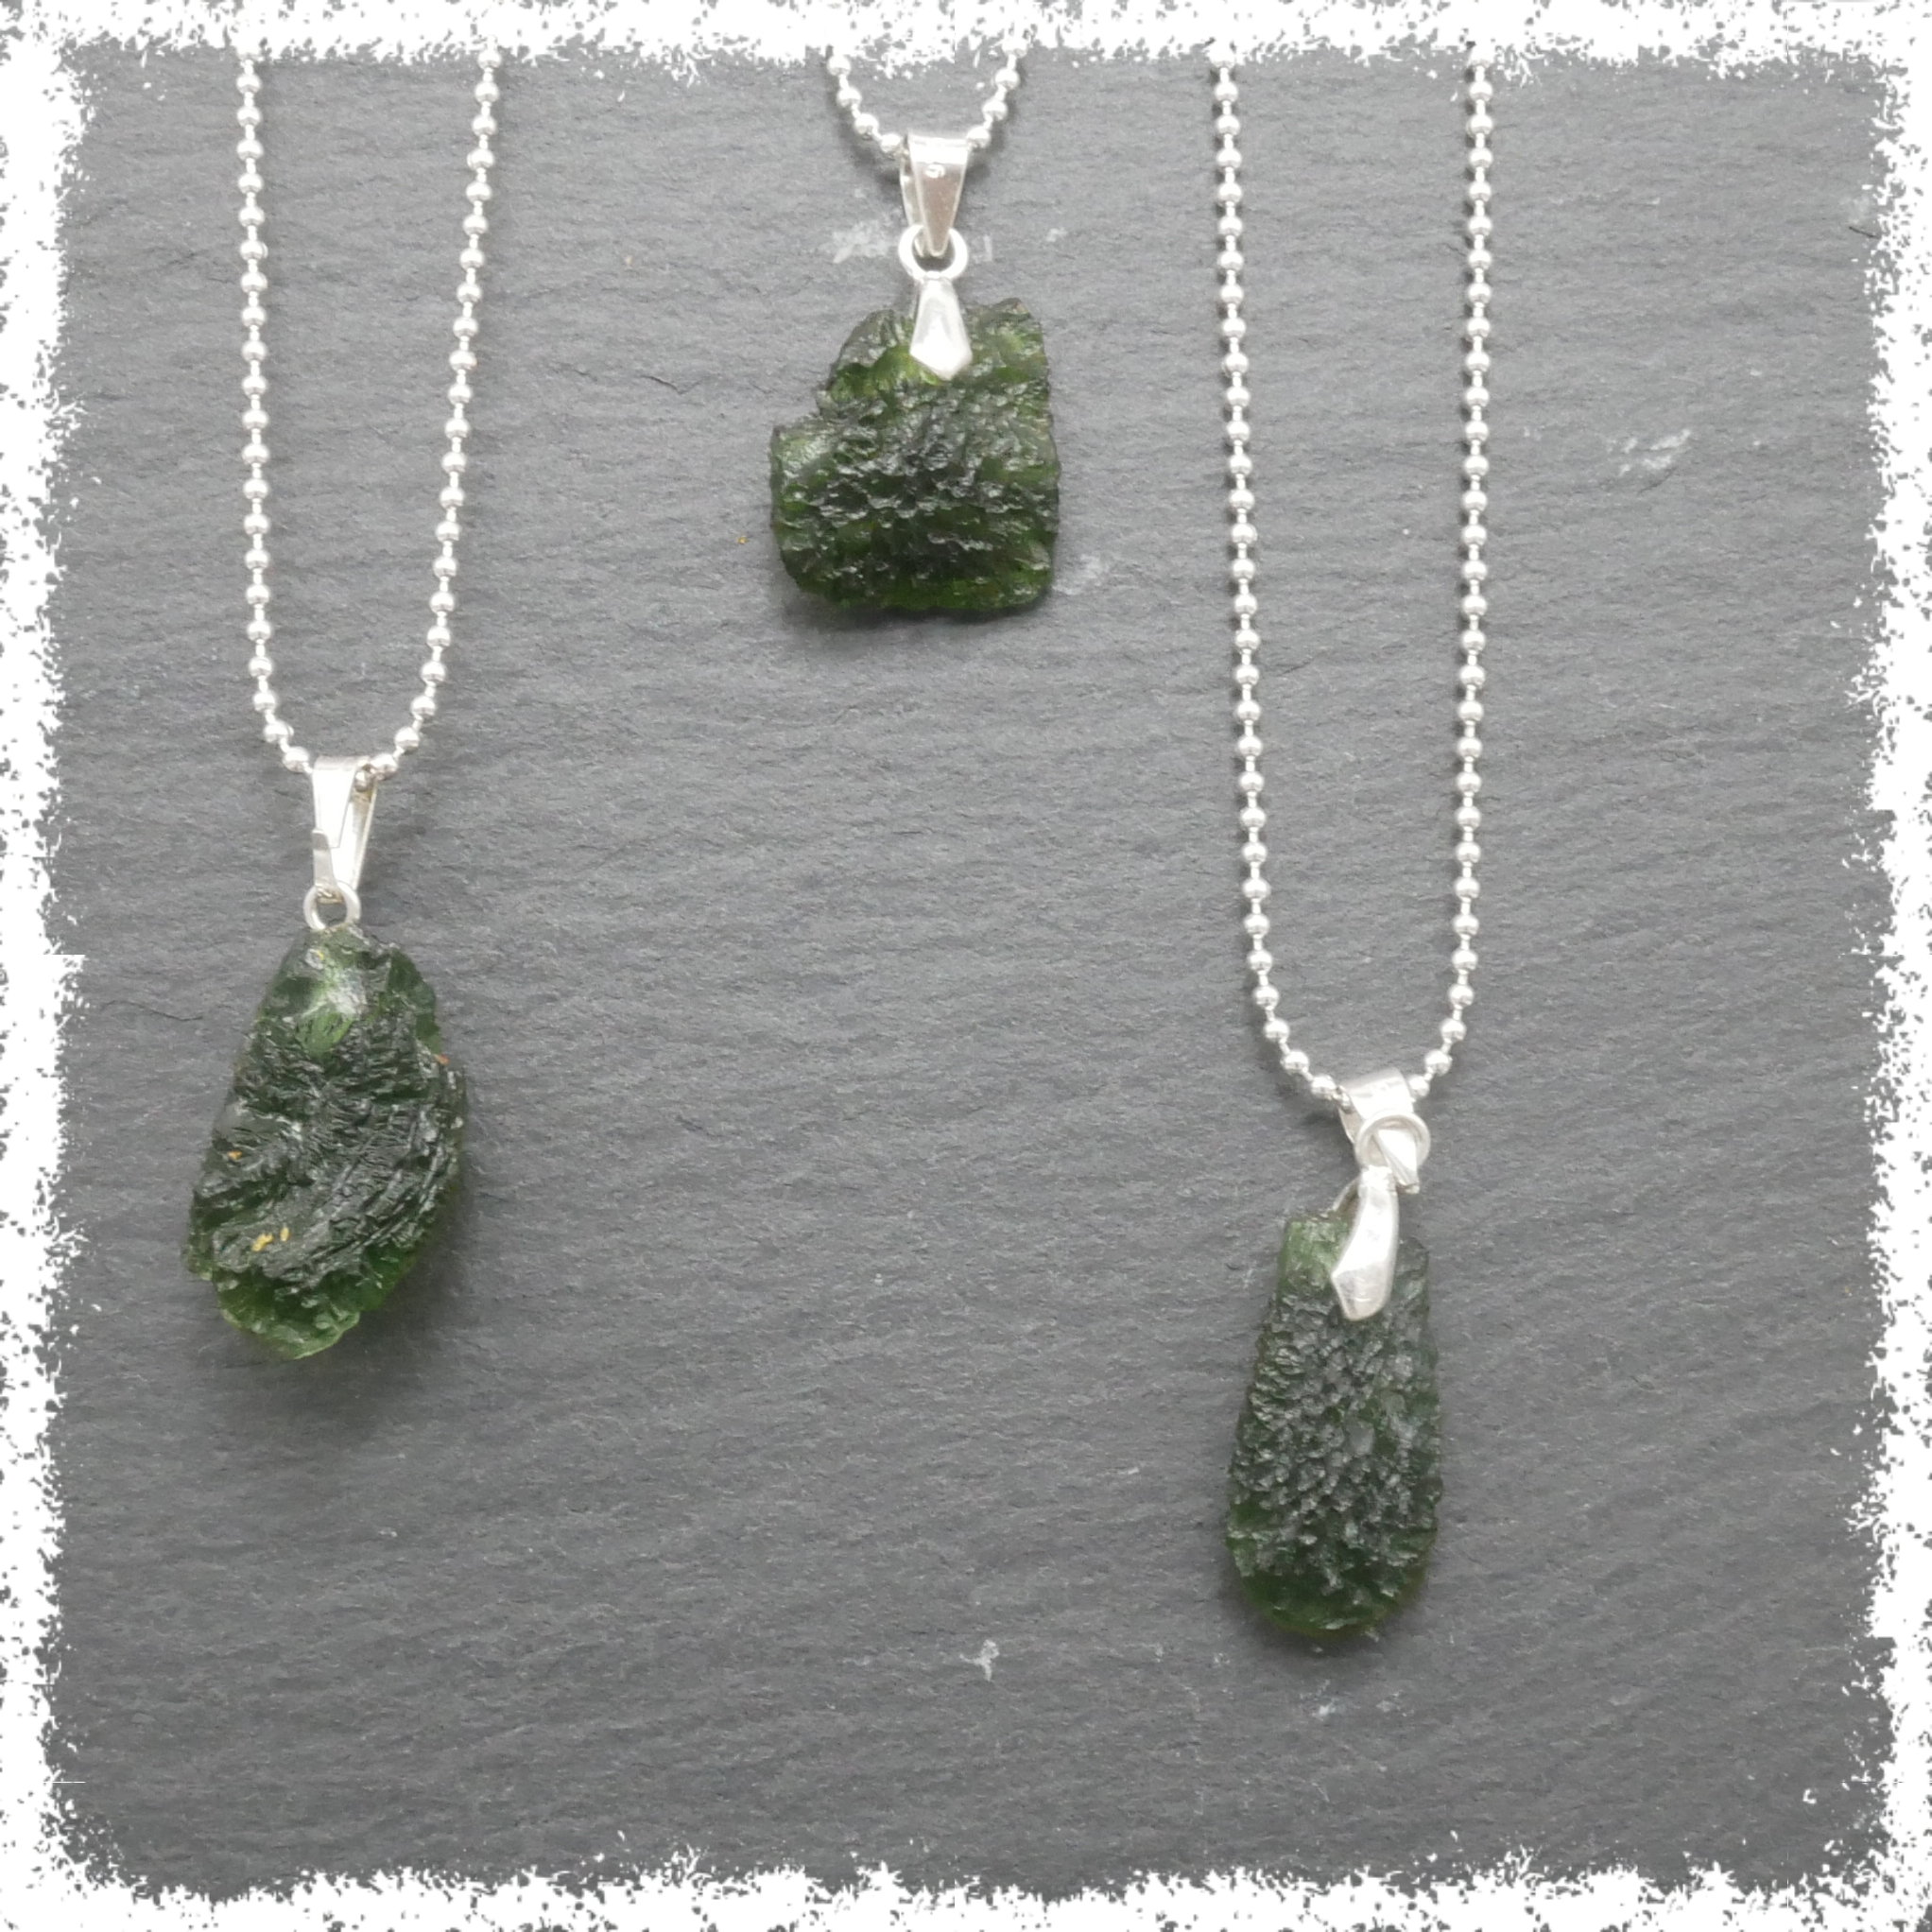 Moldavite pendant and moldavite jewelry for sale